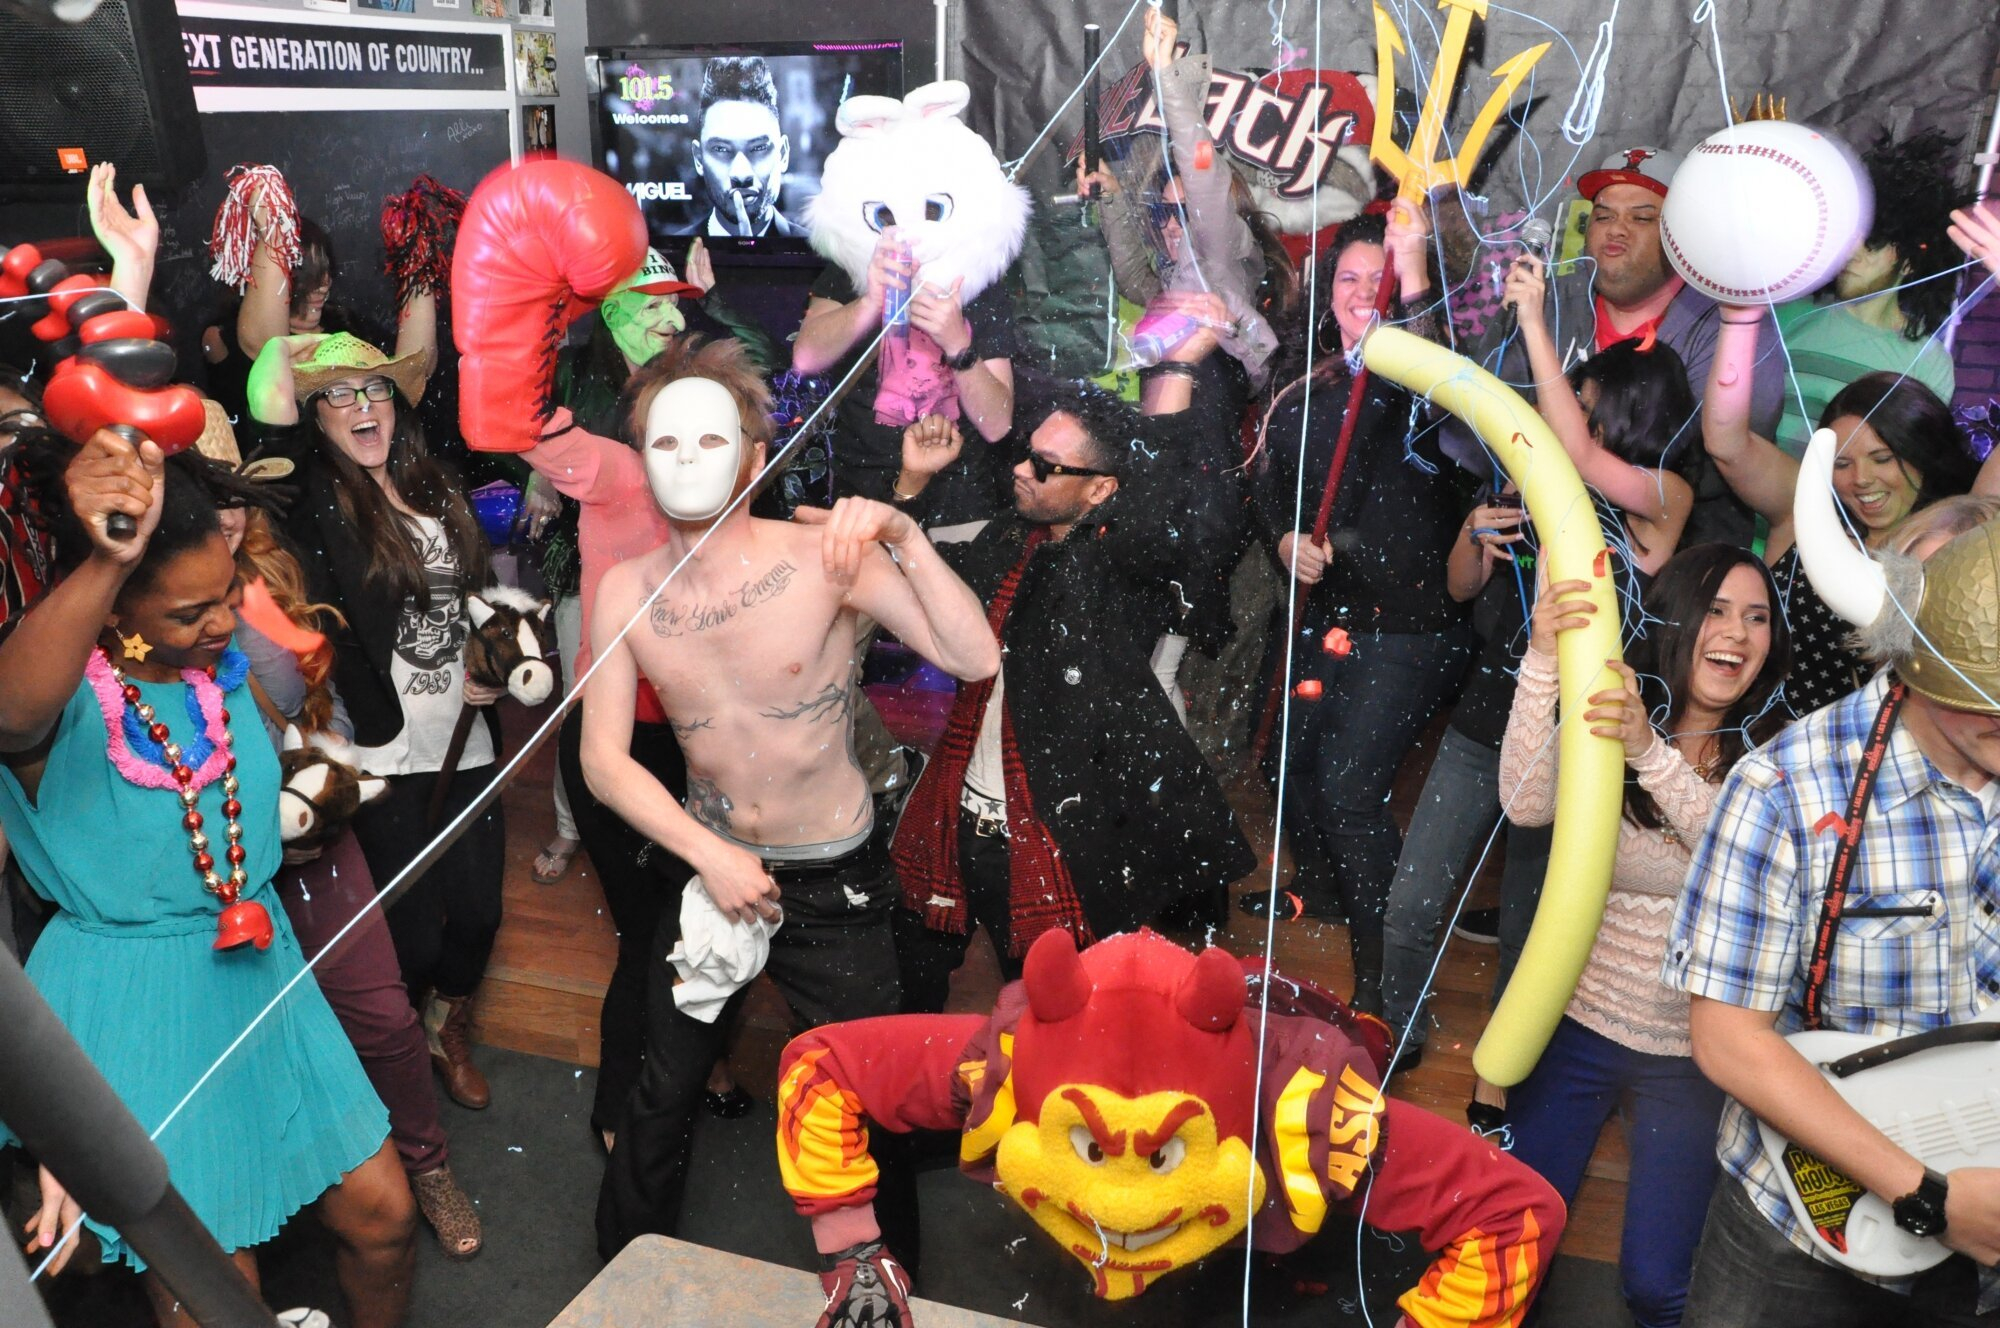 Even The Miami Heat Are Getting In On The Harlem Shake